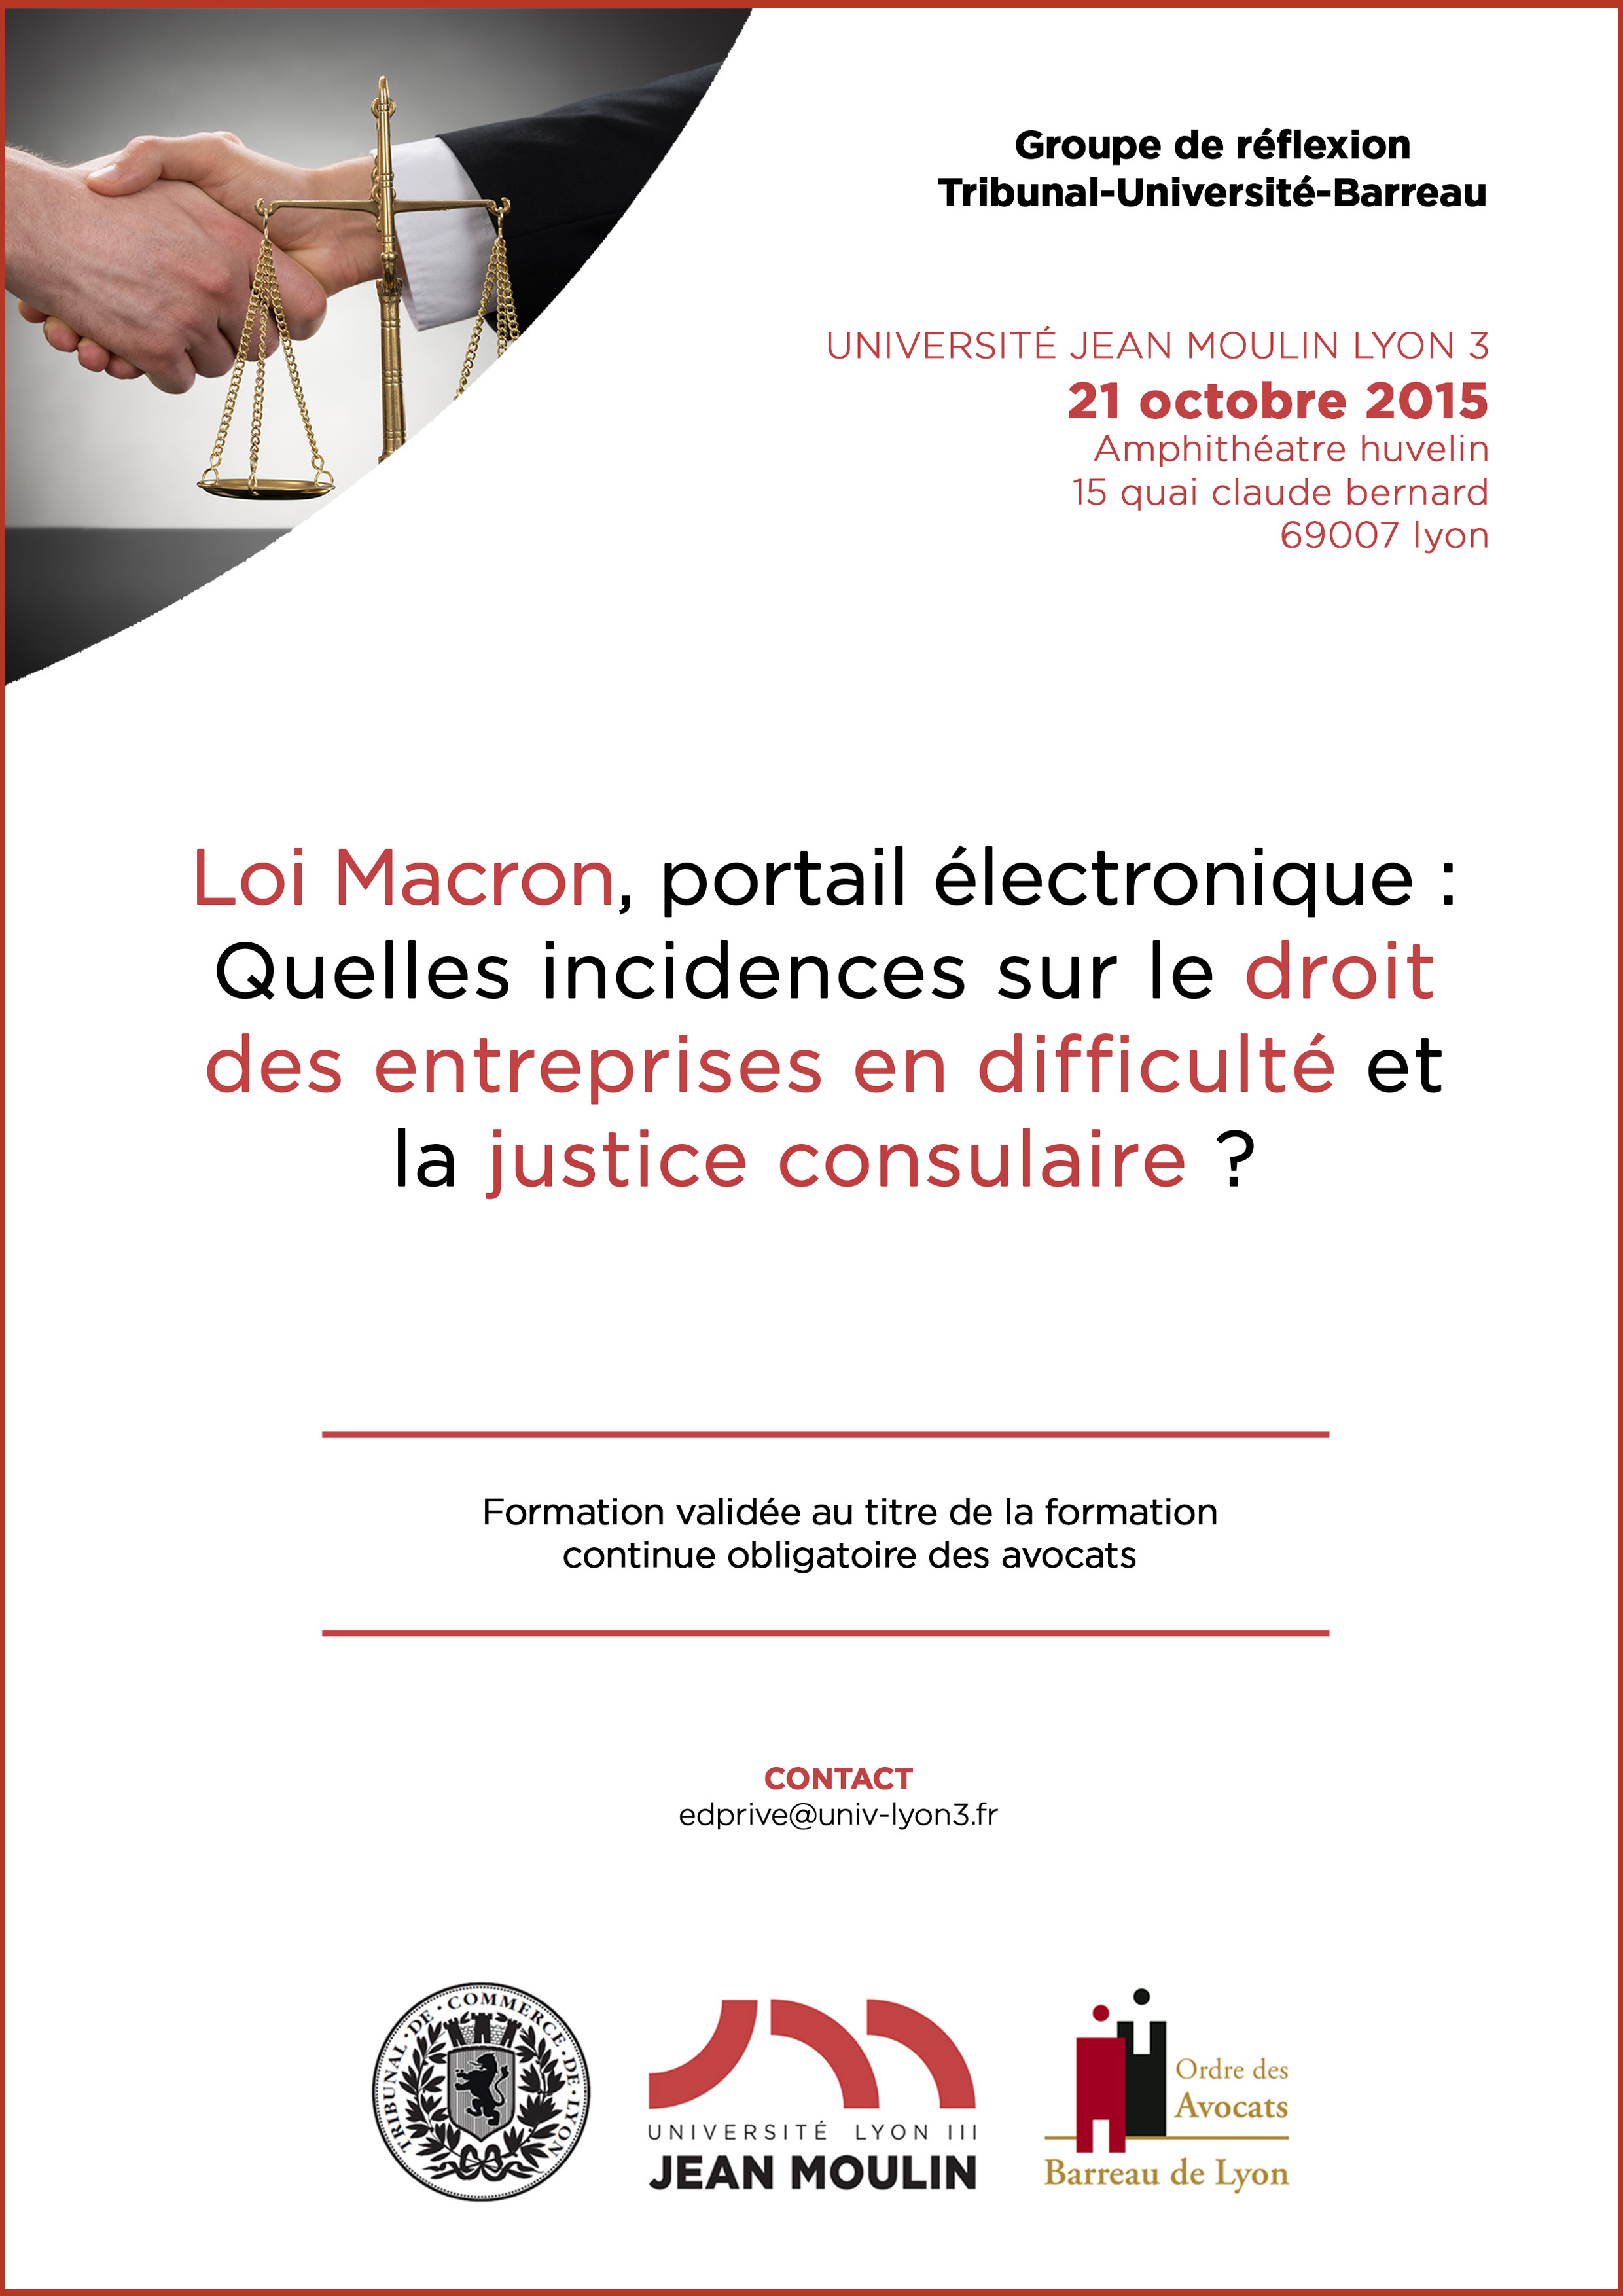 Affiche colloque TUB 21 octobre 2015